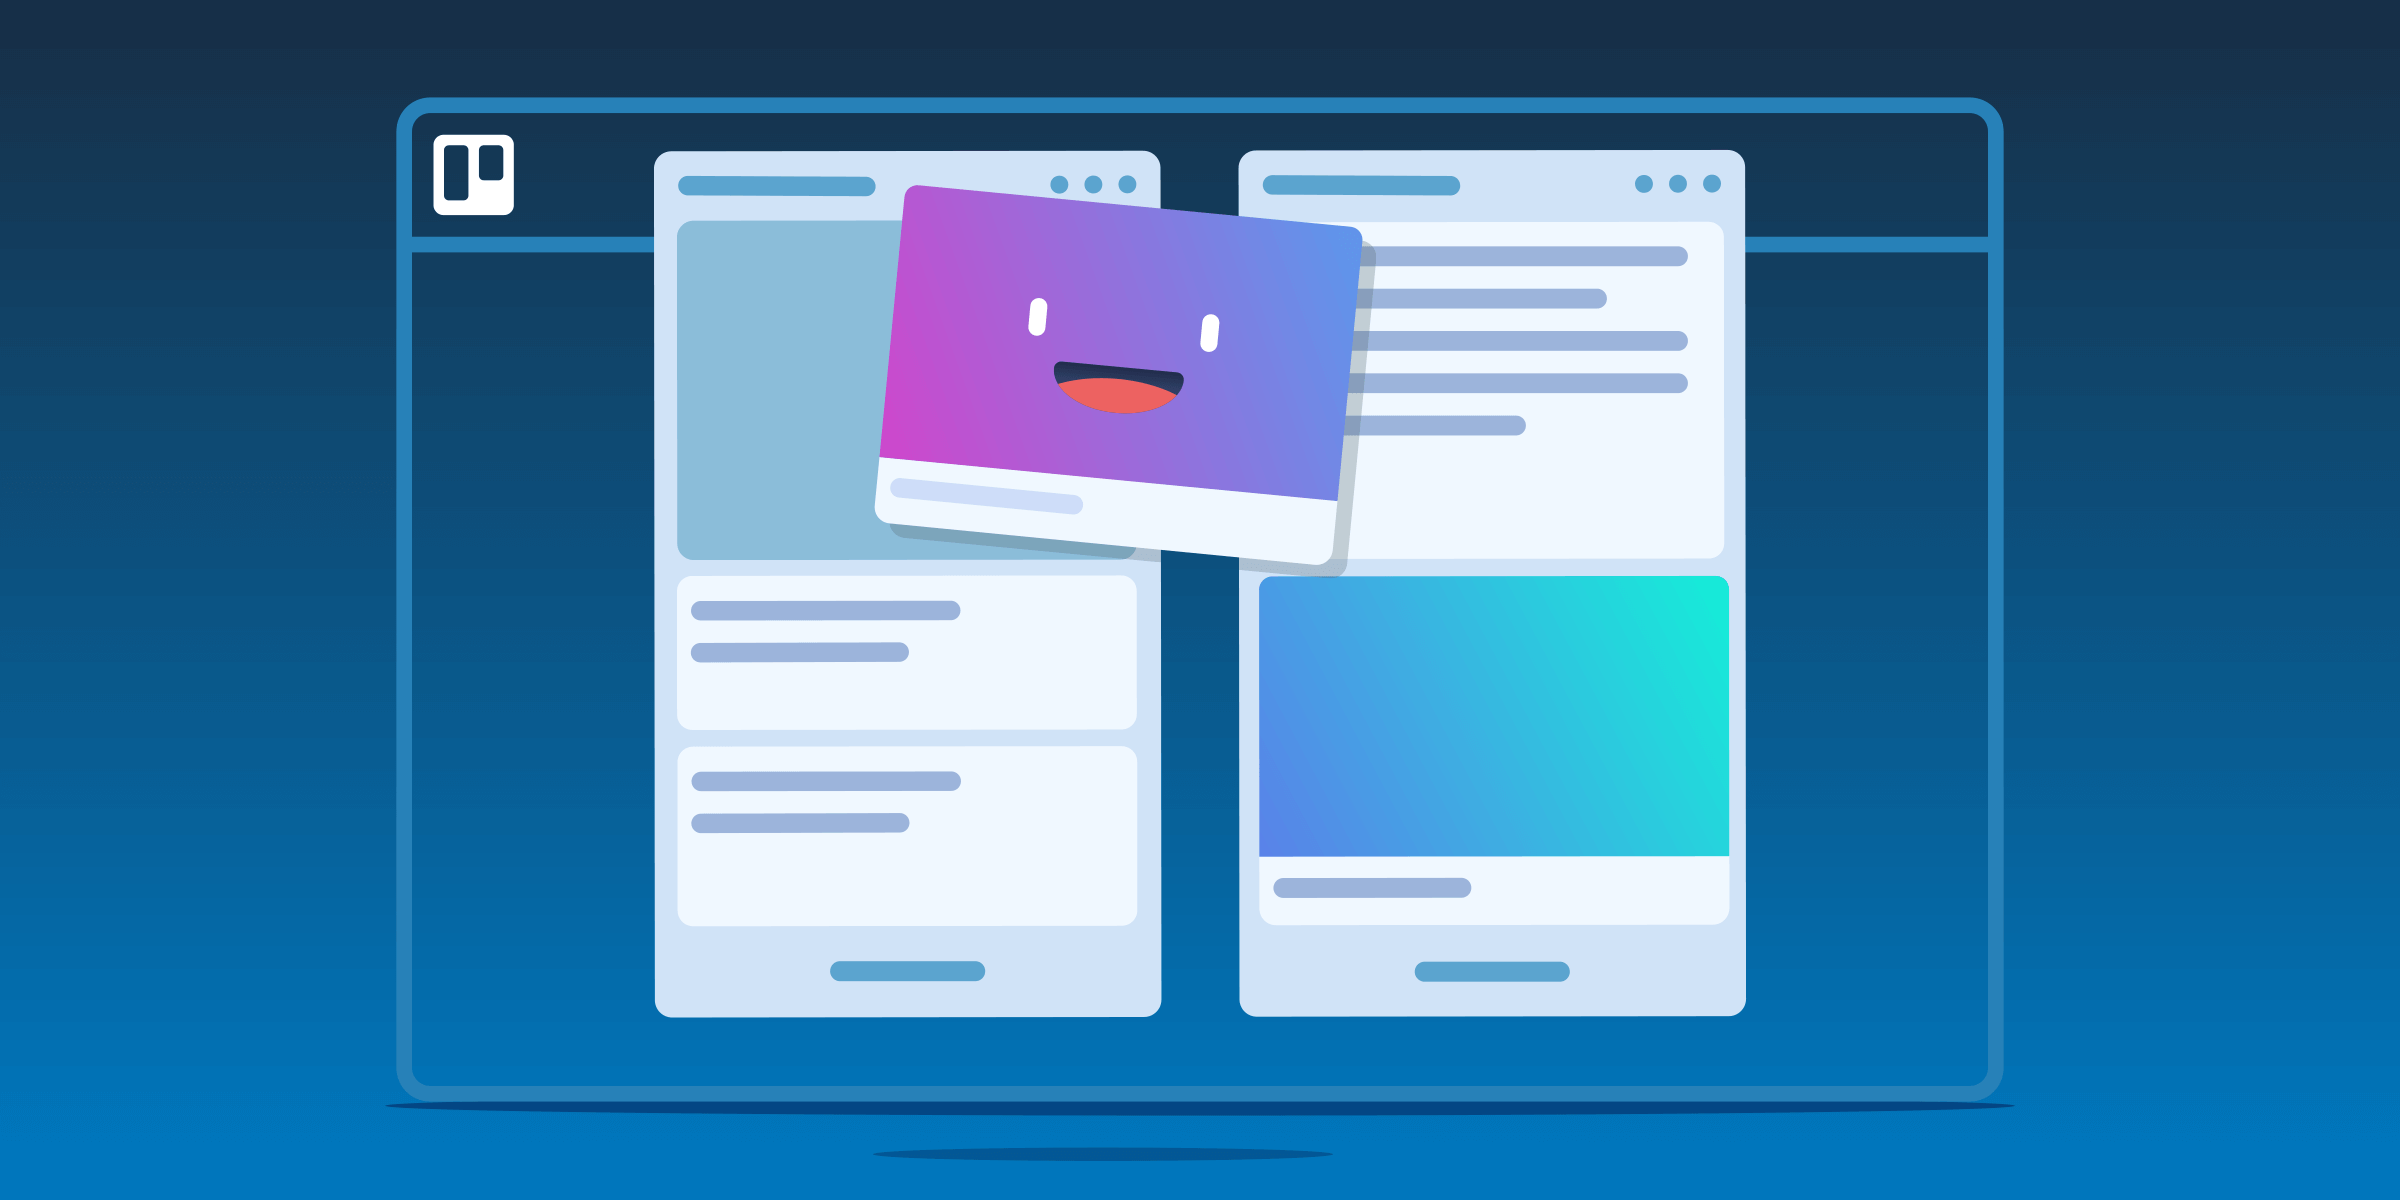 Using Multiple Trello boards: How to organize your Trello cards between boards